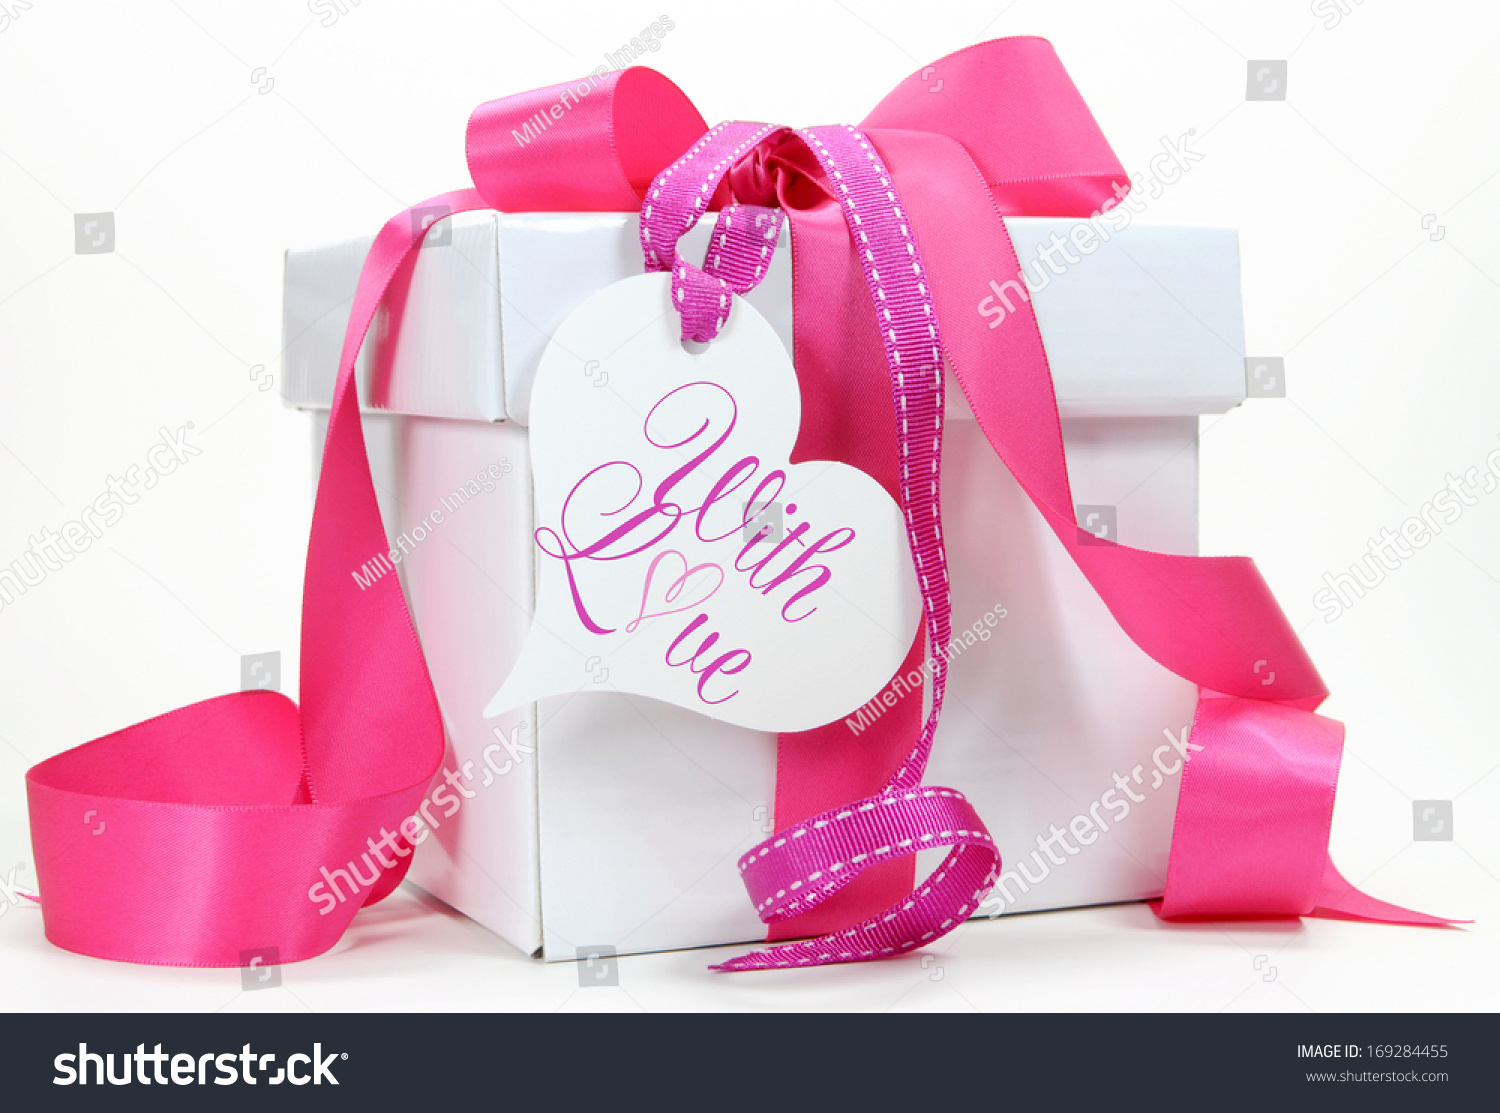 Beautiful Gifts For Mom Birthday: Beautiful Pink And White Gift Box Present For Christmas